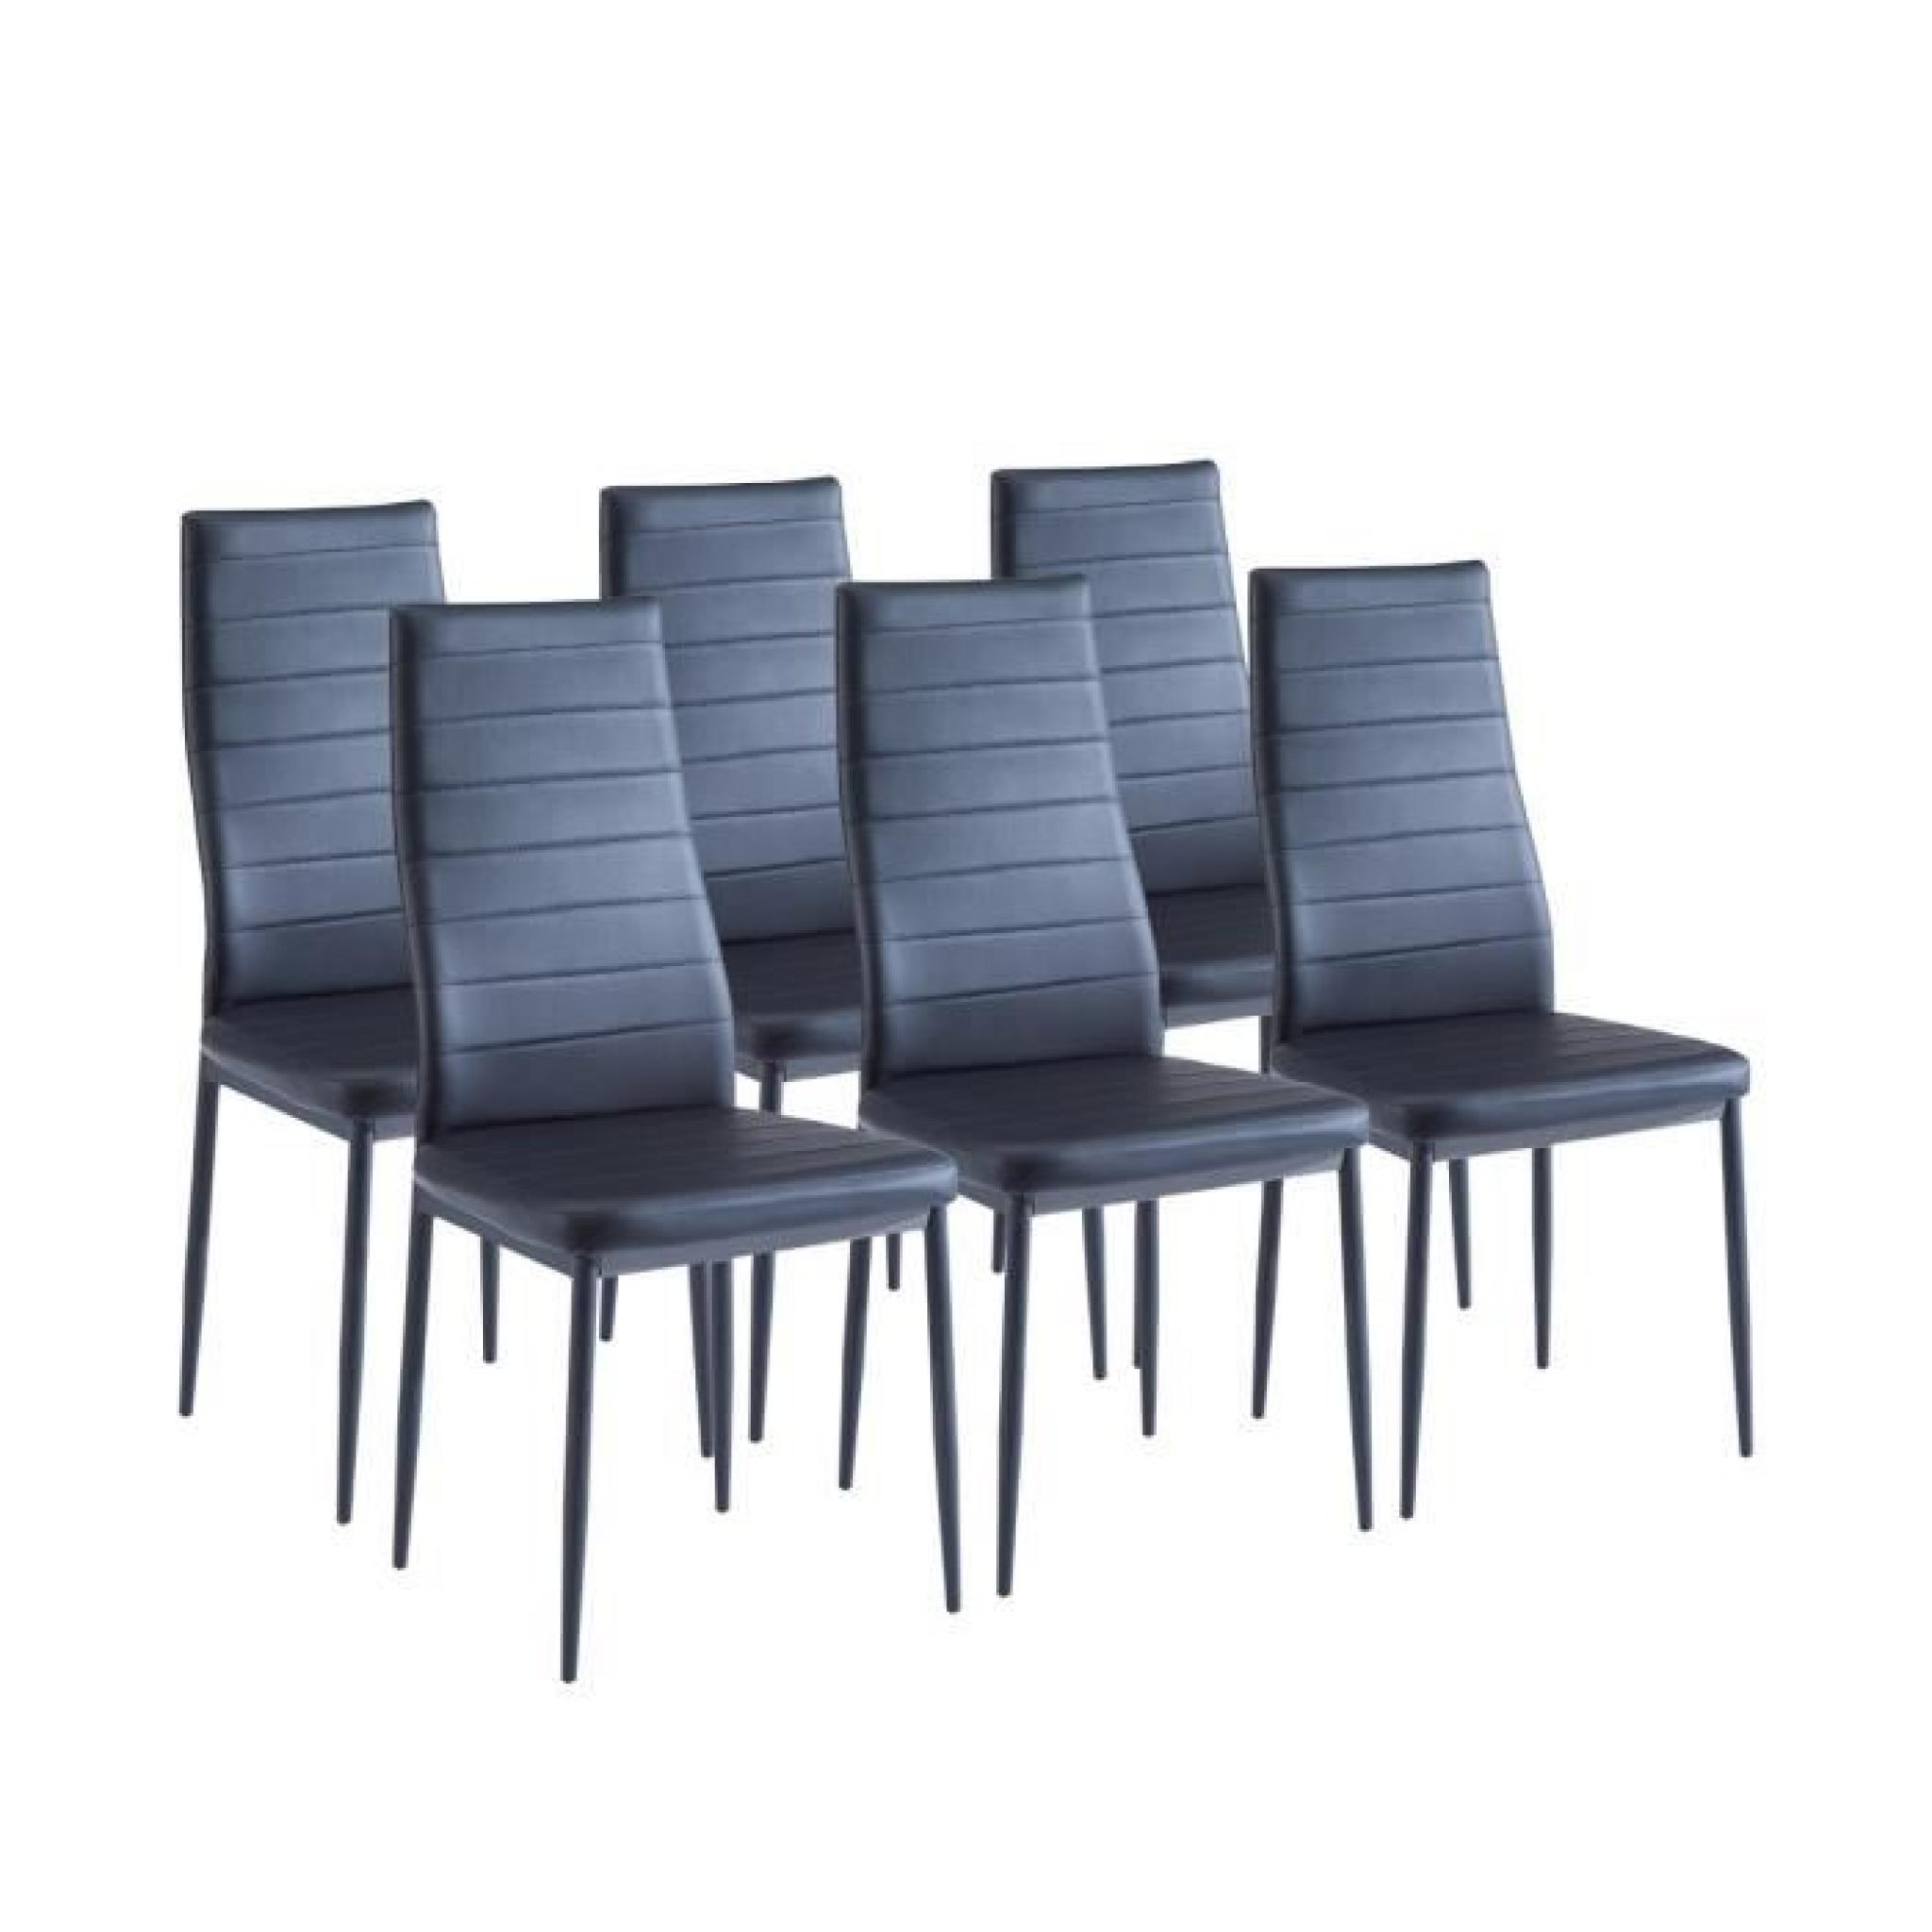 Best sam lot de chaises de salle manger noires with chaise for Lot de 6 chaises pas cher